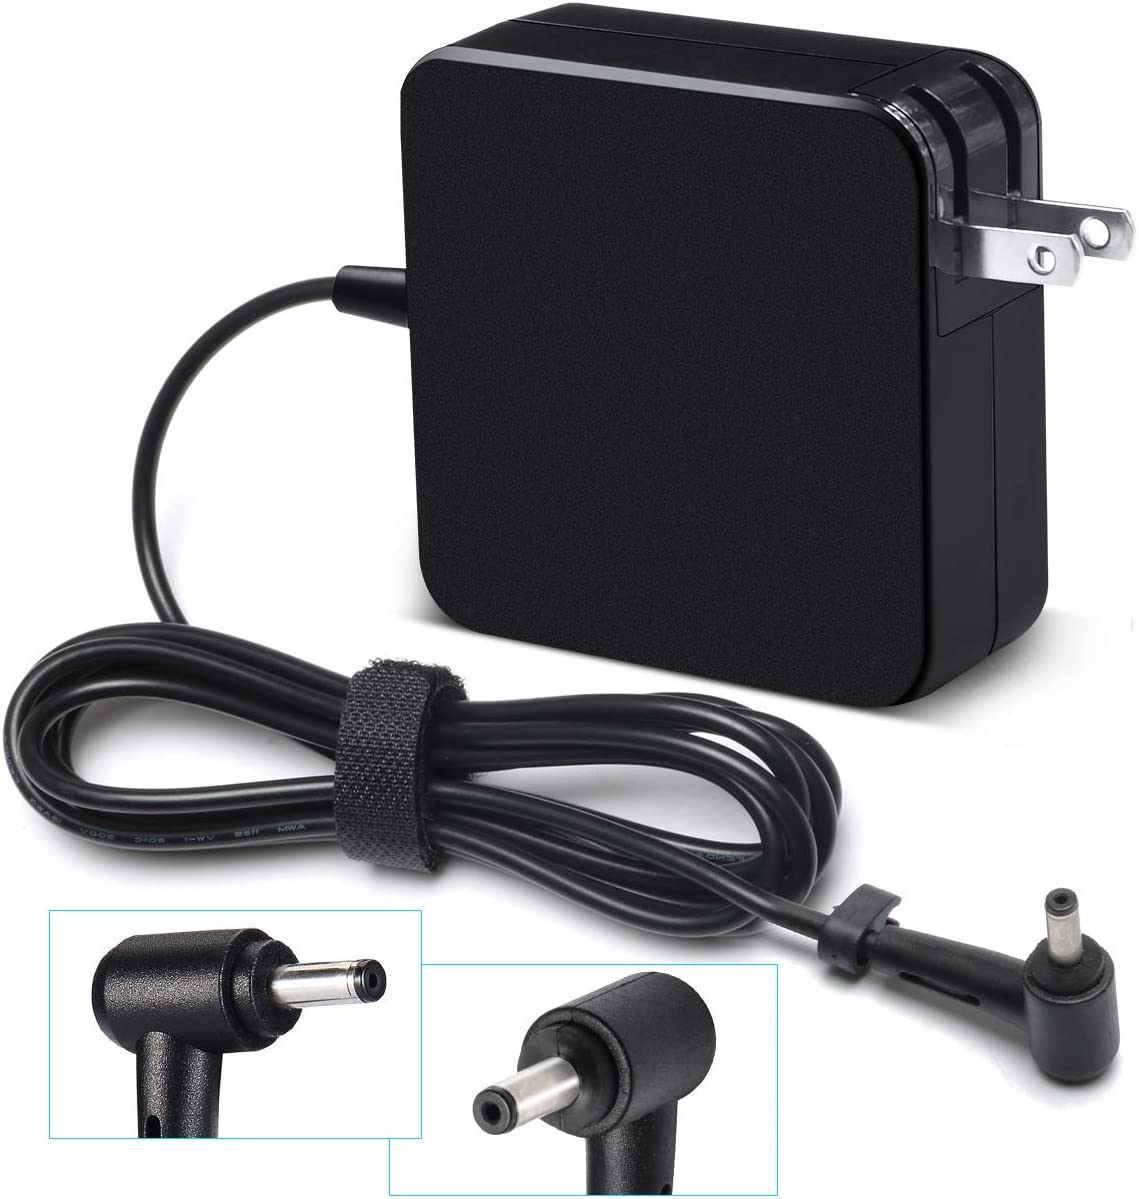 New Q304 UX31A UX303U TP301 AC Laptop Power Charger for Asus Q304UA Q504 Q504U Q504UA Q553 UX310UA UX310UQ UX410 TP501UA TP501U TP501 N65W-02 ADP-65AWA